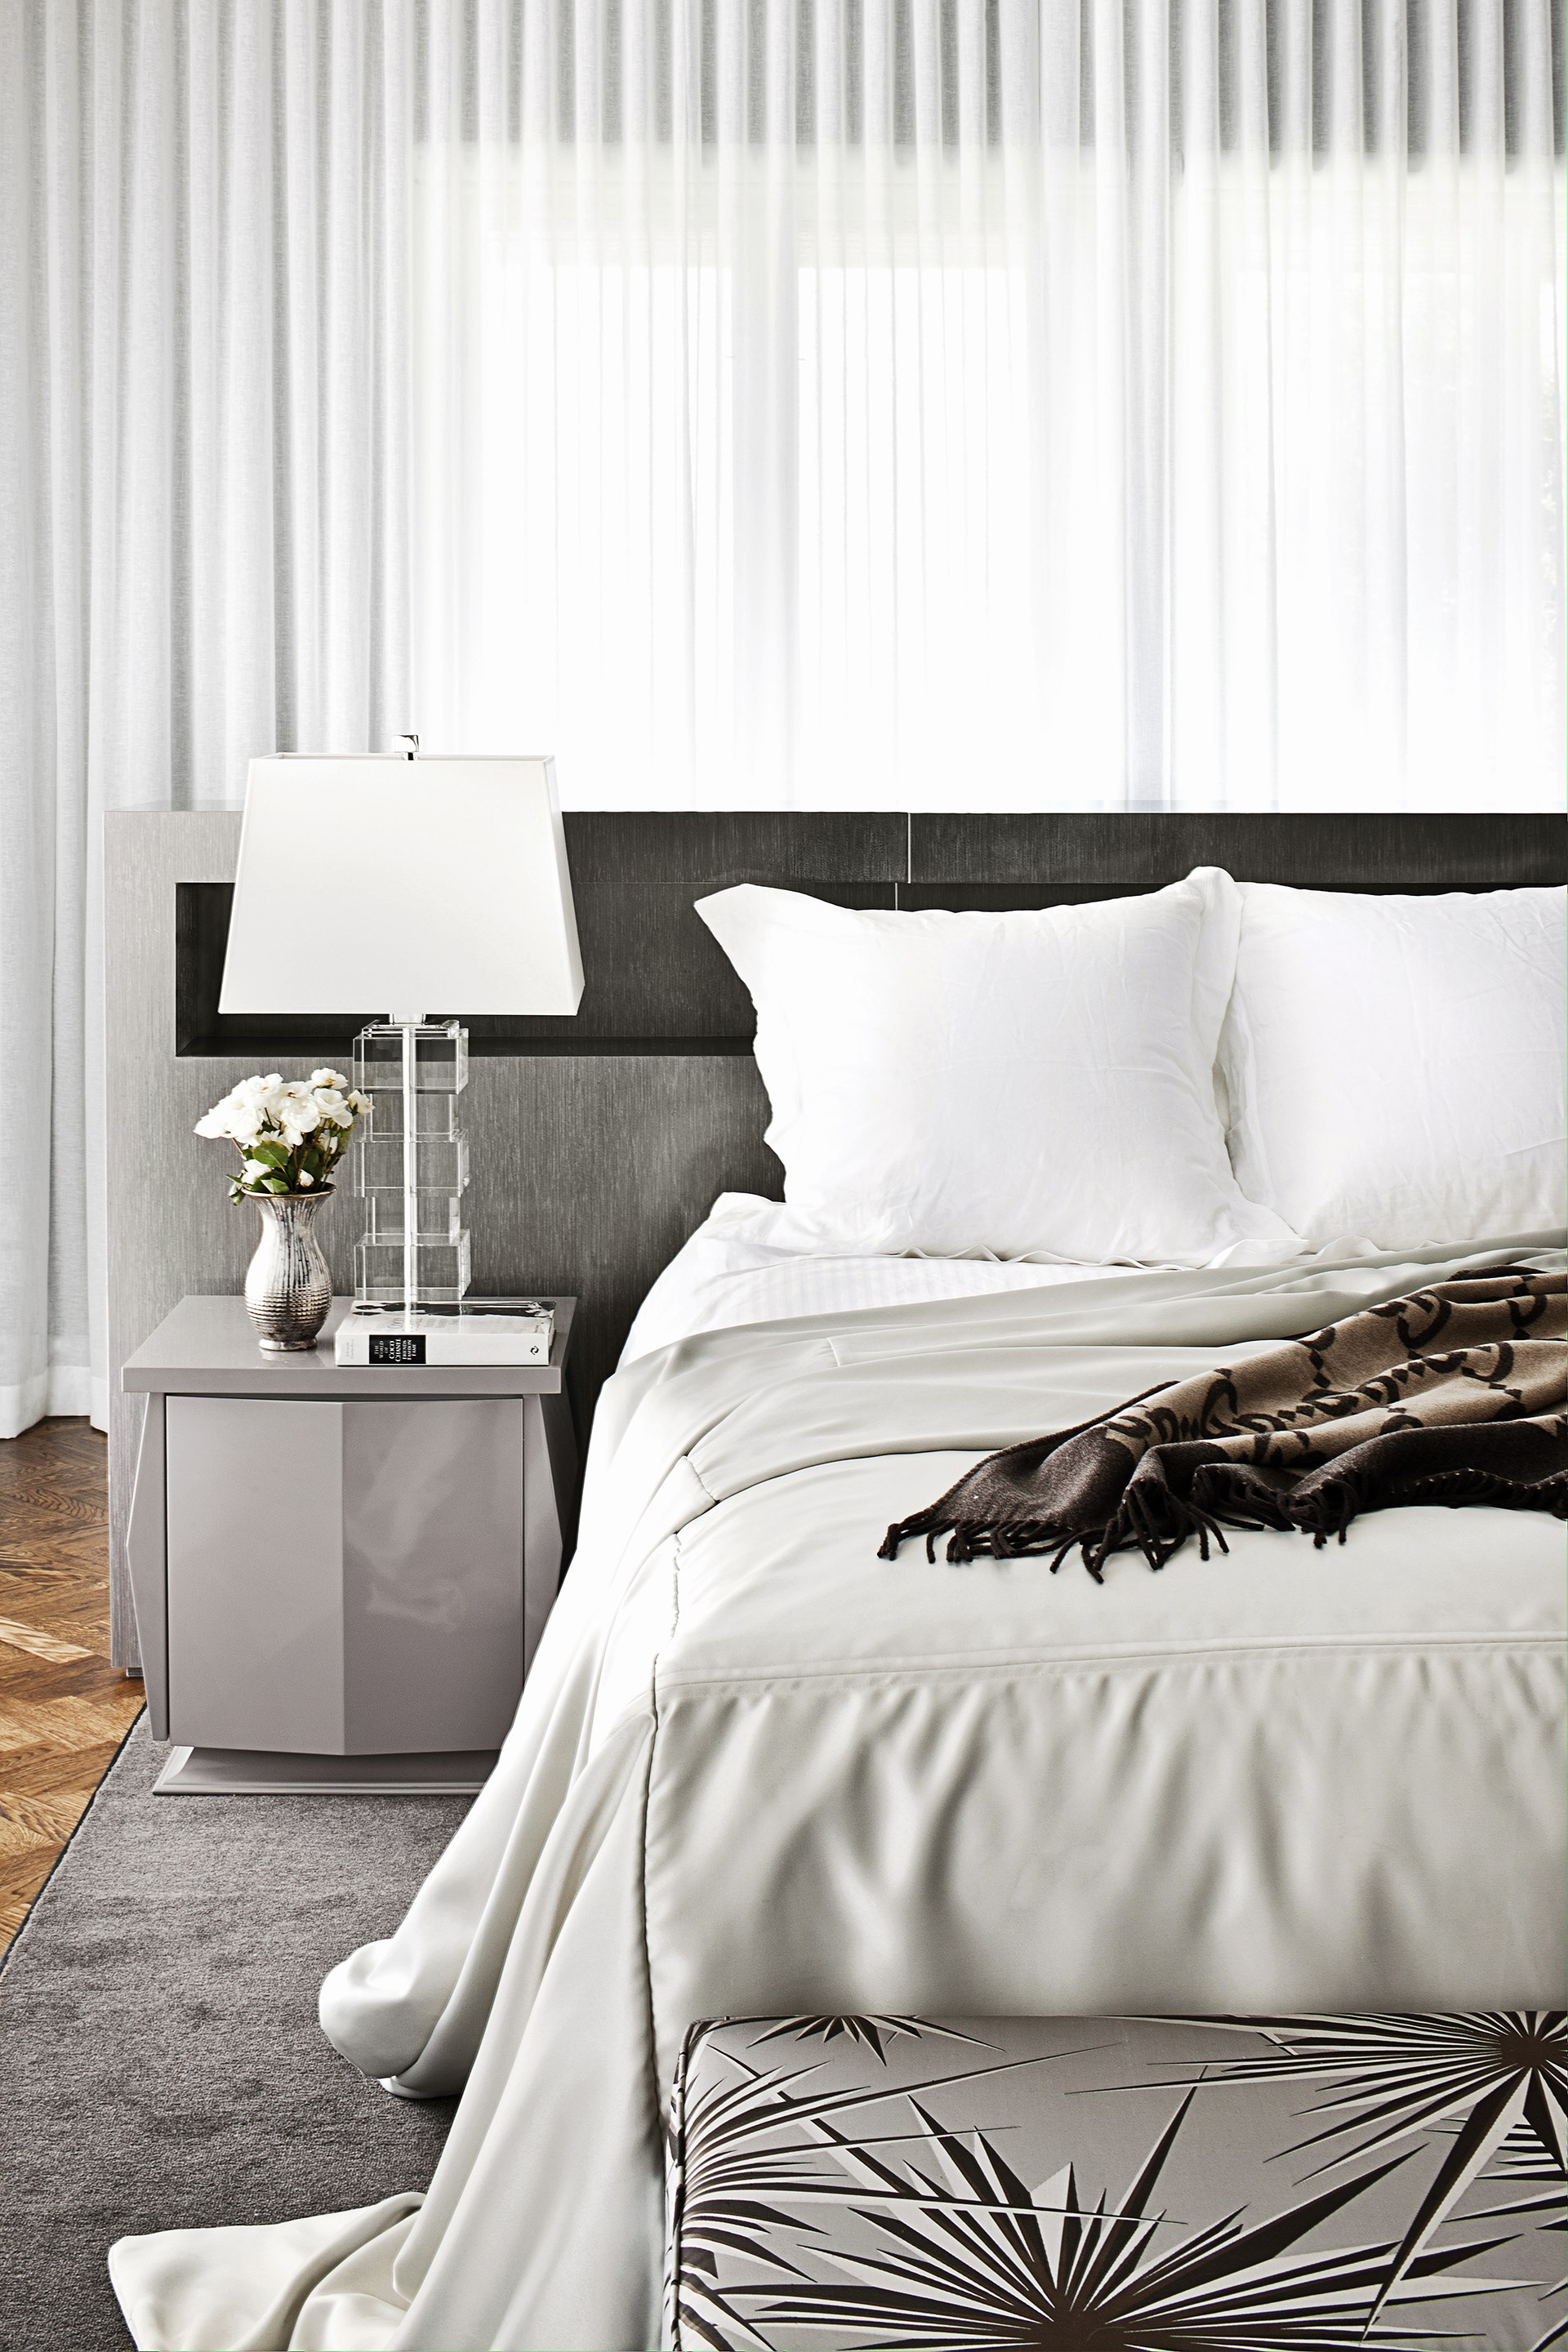 As seen in this [sophisticated Melbourne abode](http://www.homestolove.com.au/sophisticated-living-in-a-melbourne-family-home-1855), fifty shades of grey is in fact a soothing way to decorate the bedroom. *Photo: Shannon McGrath*